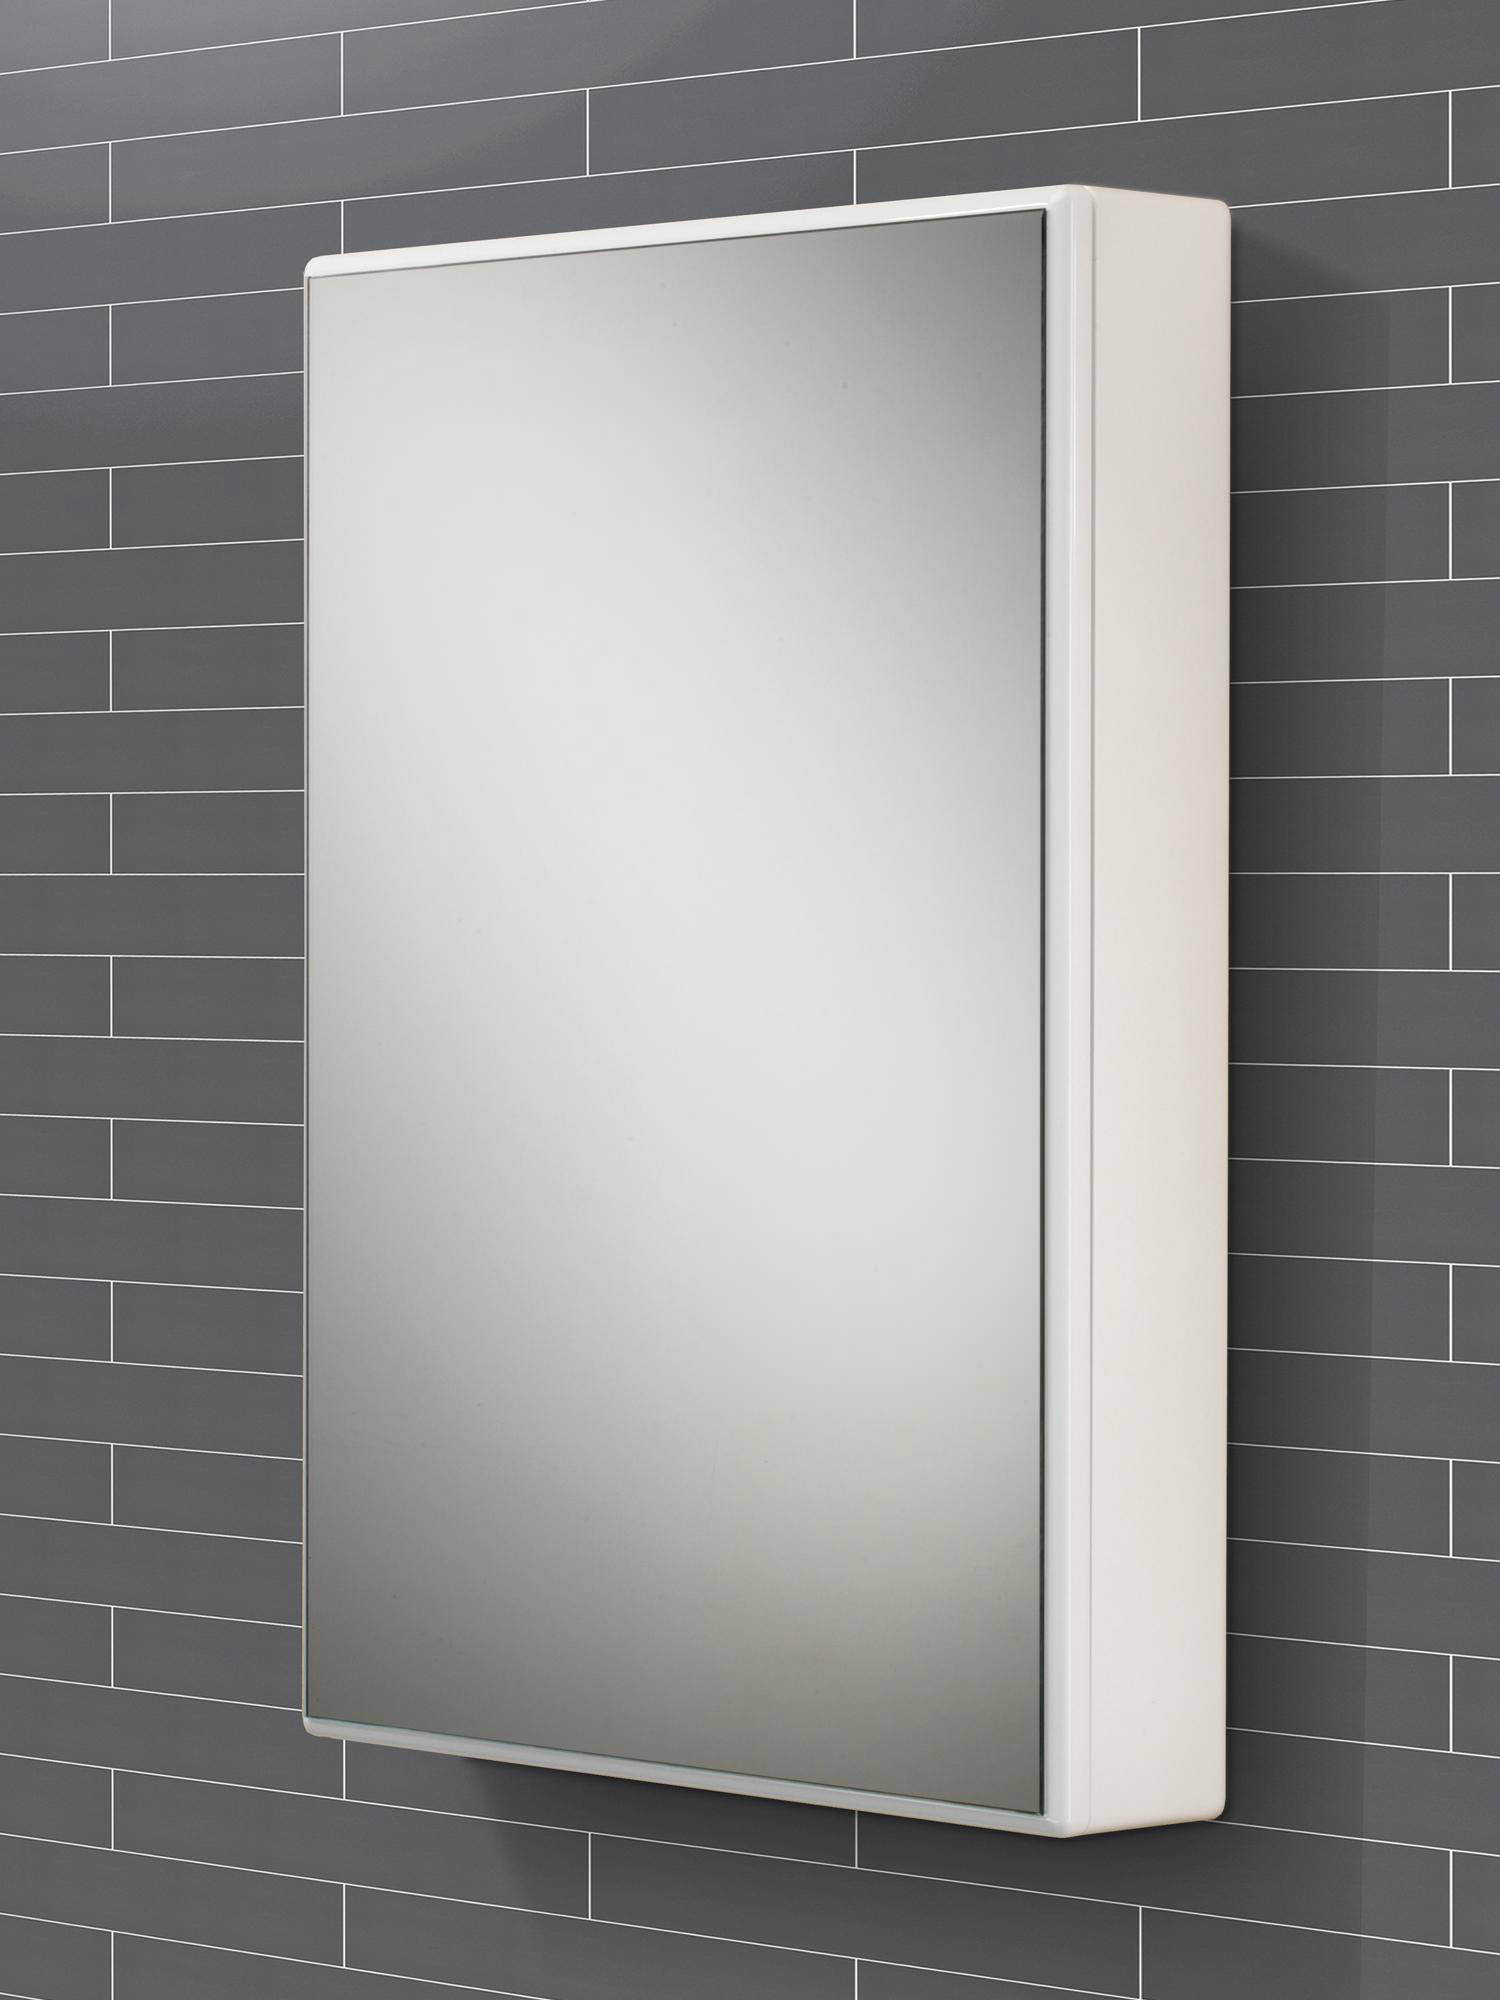 Hib Tulsa Slimline Single Door Mirrored Cabinet X